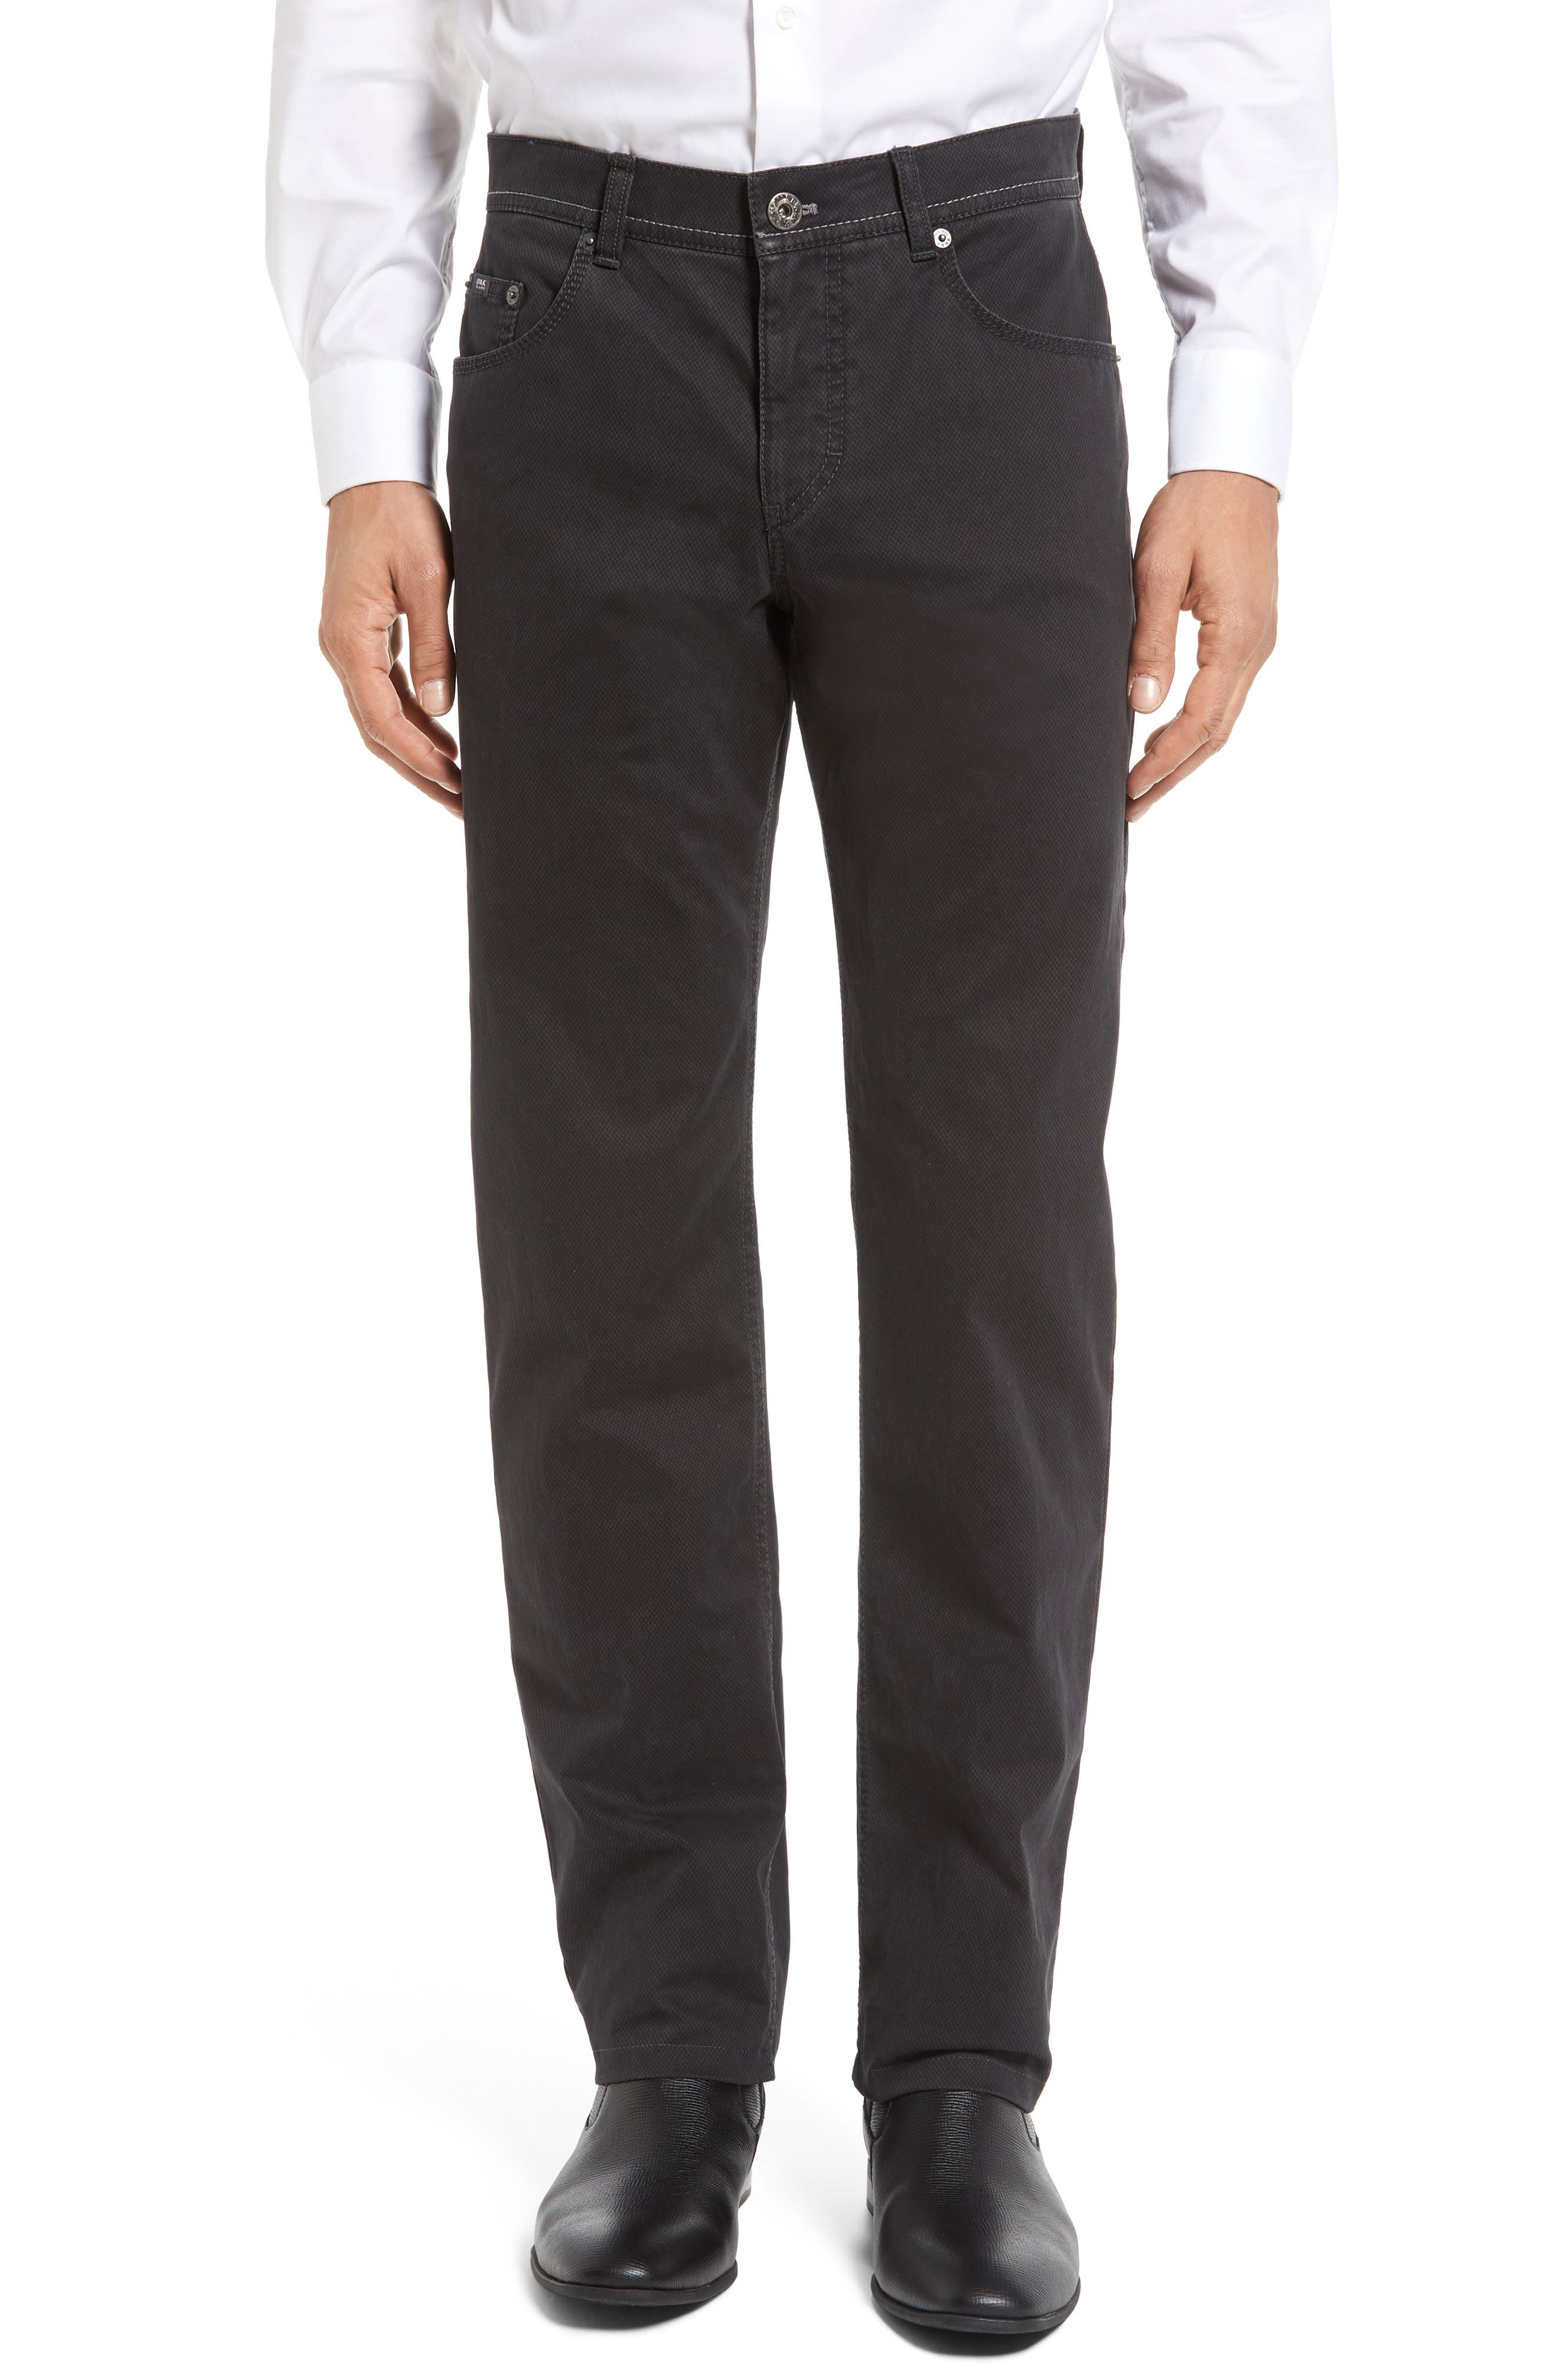 Main Image - Brax Luxury Stretch Modern Fit Trousers